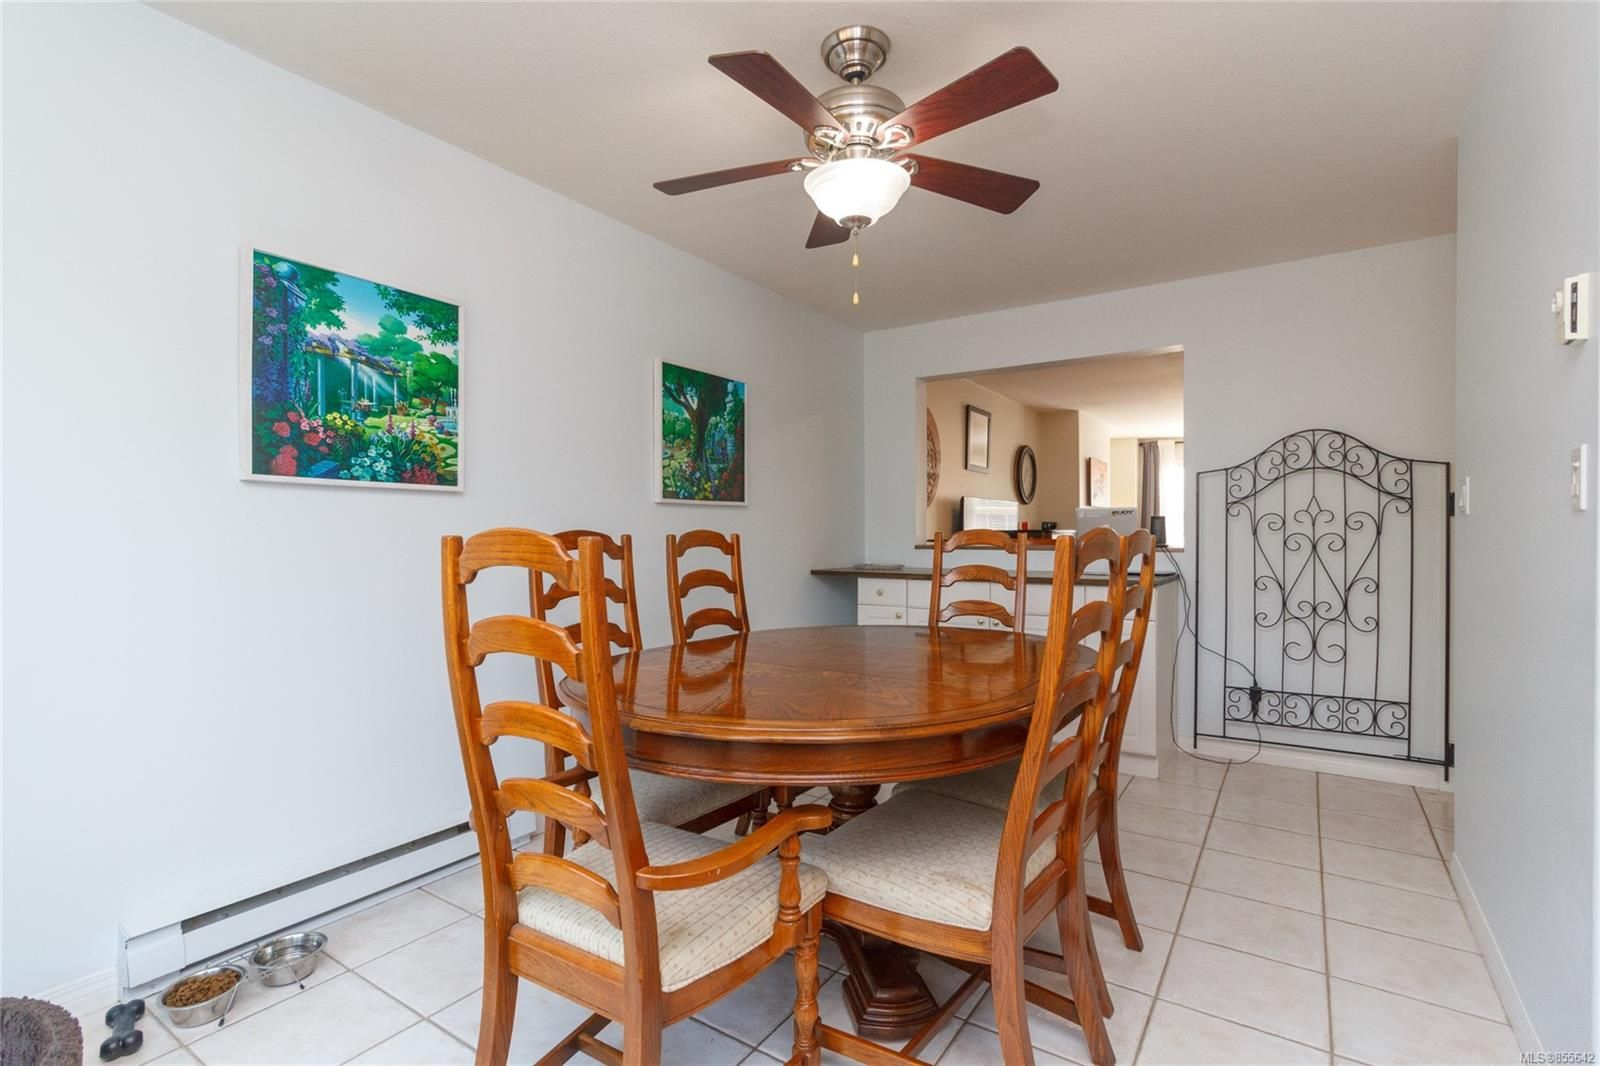 Photo 9: Photos: 52 14 Erskine Lane in : VR Hospital Row/Townhouse for sale (View Royal)  : MLS®# 855642